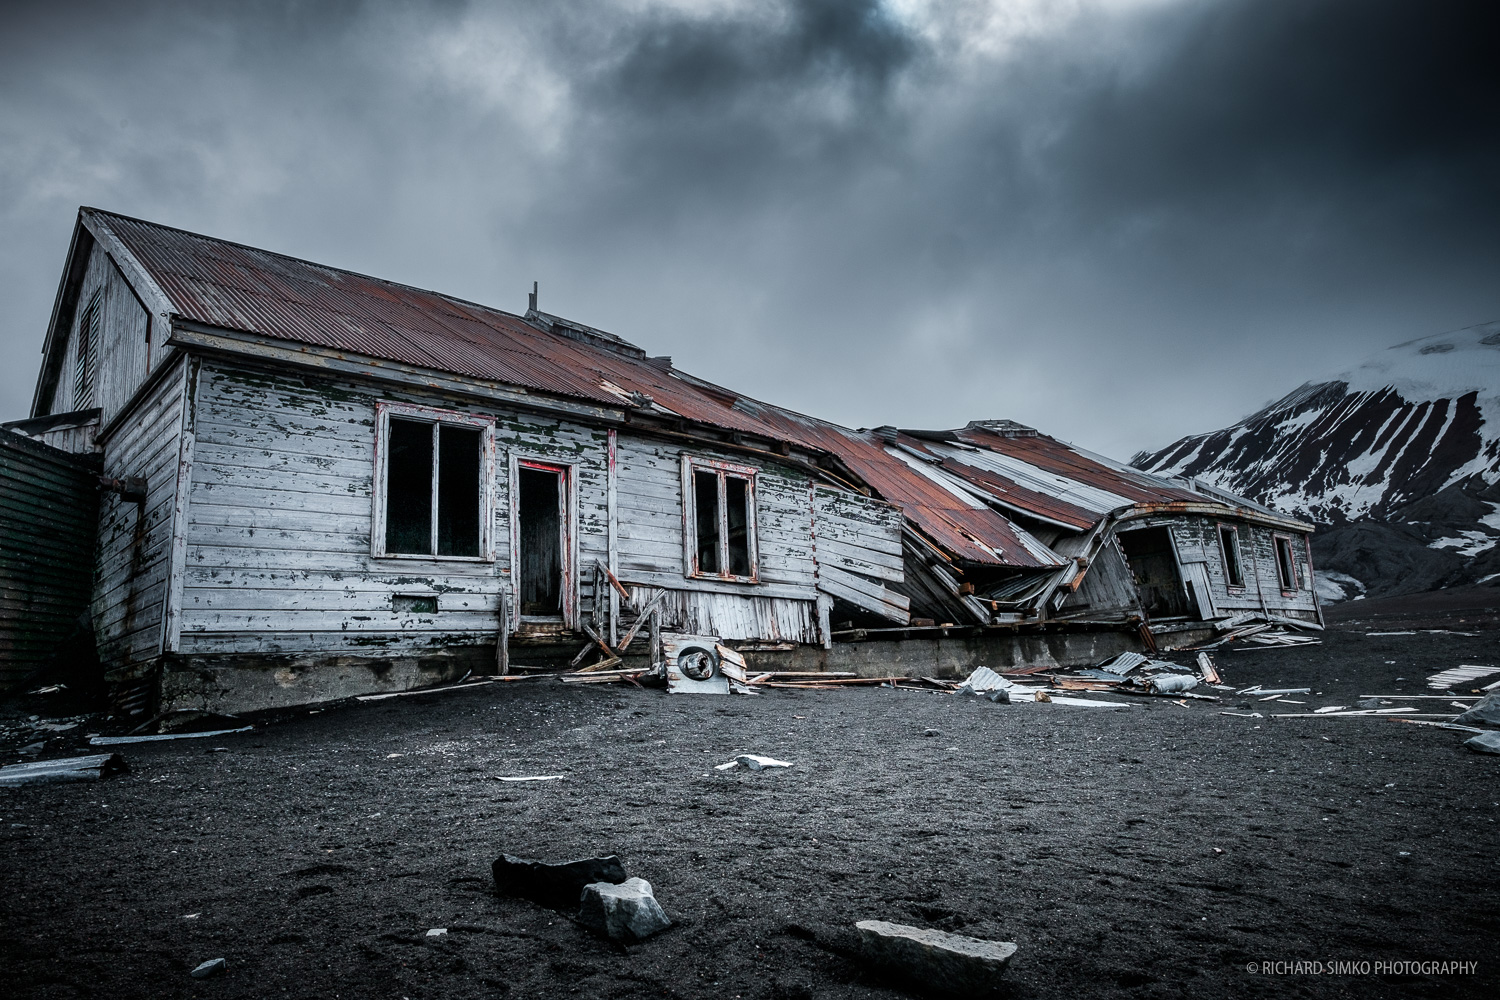 Remains of the house that whalers used to live in during the times when whaling was stil going on in Deception Island.